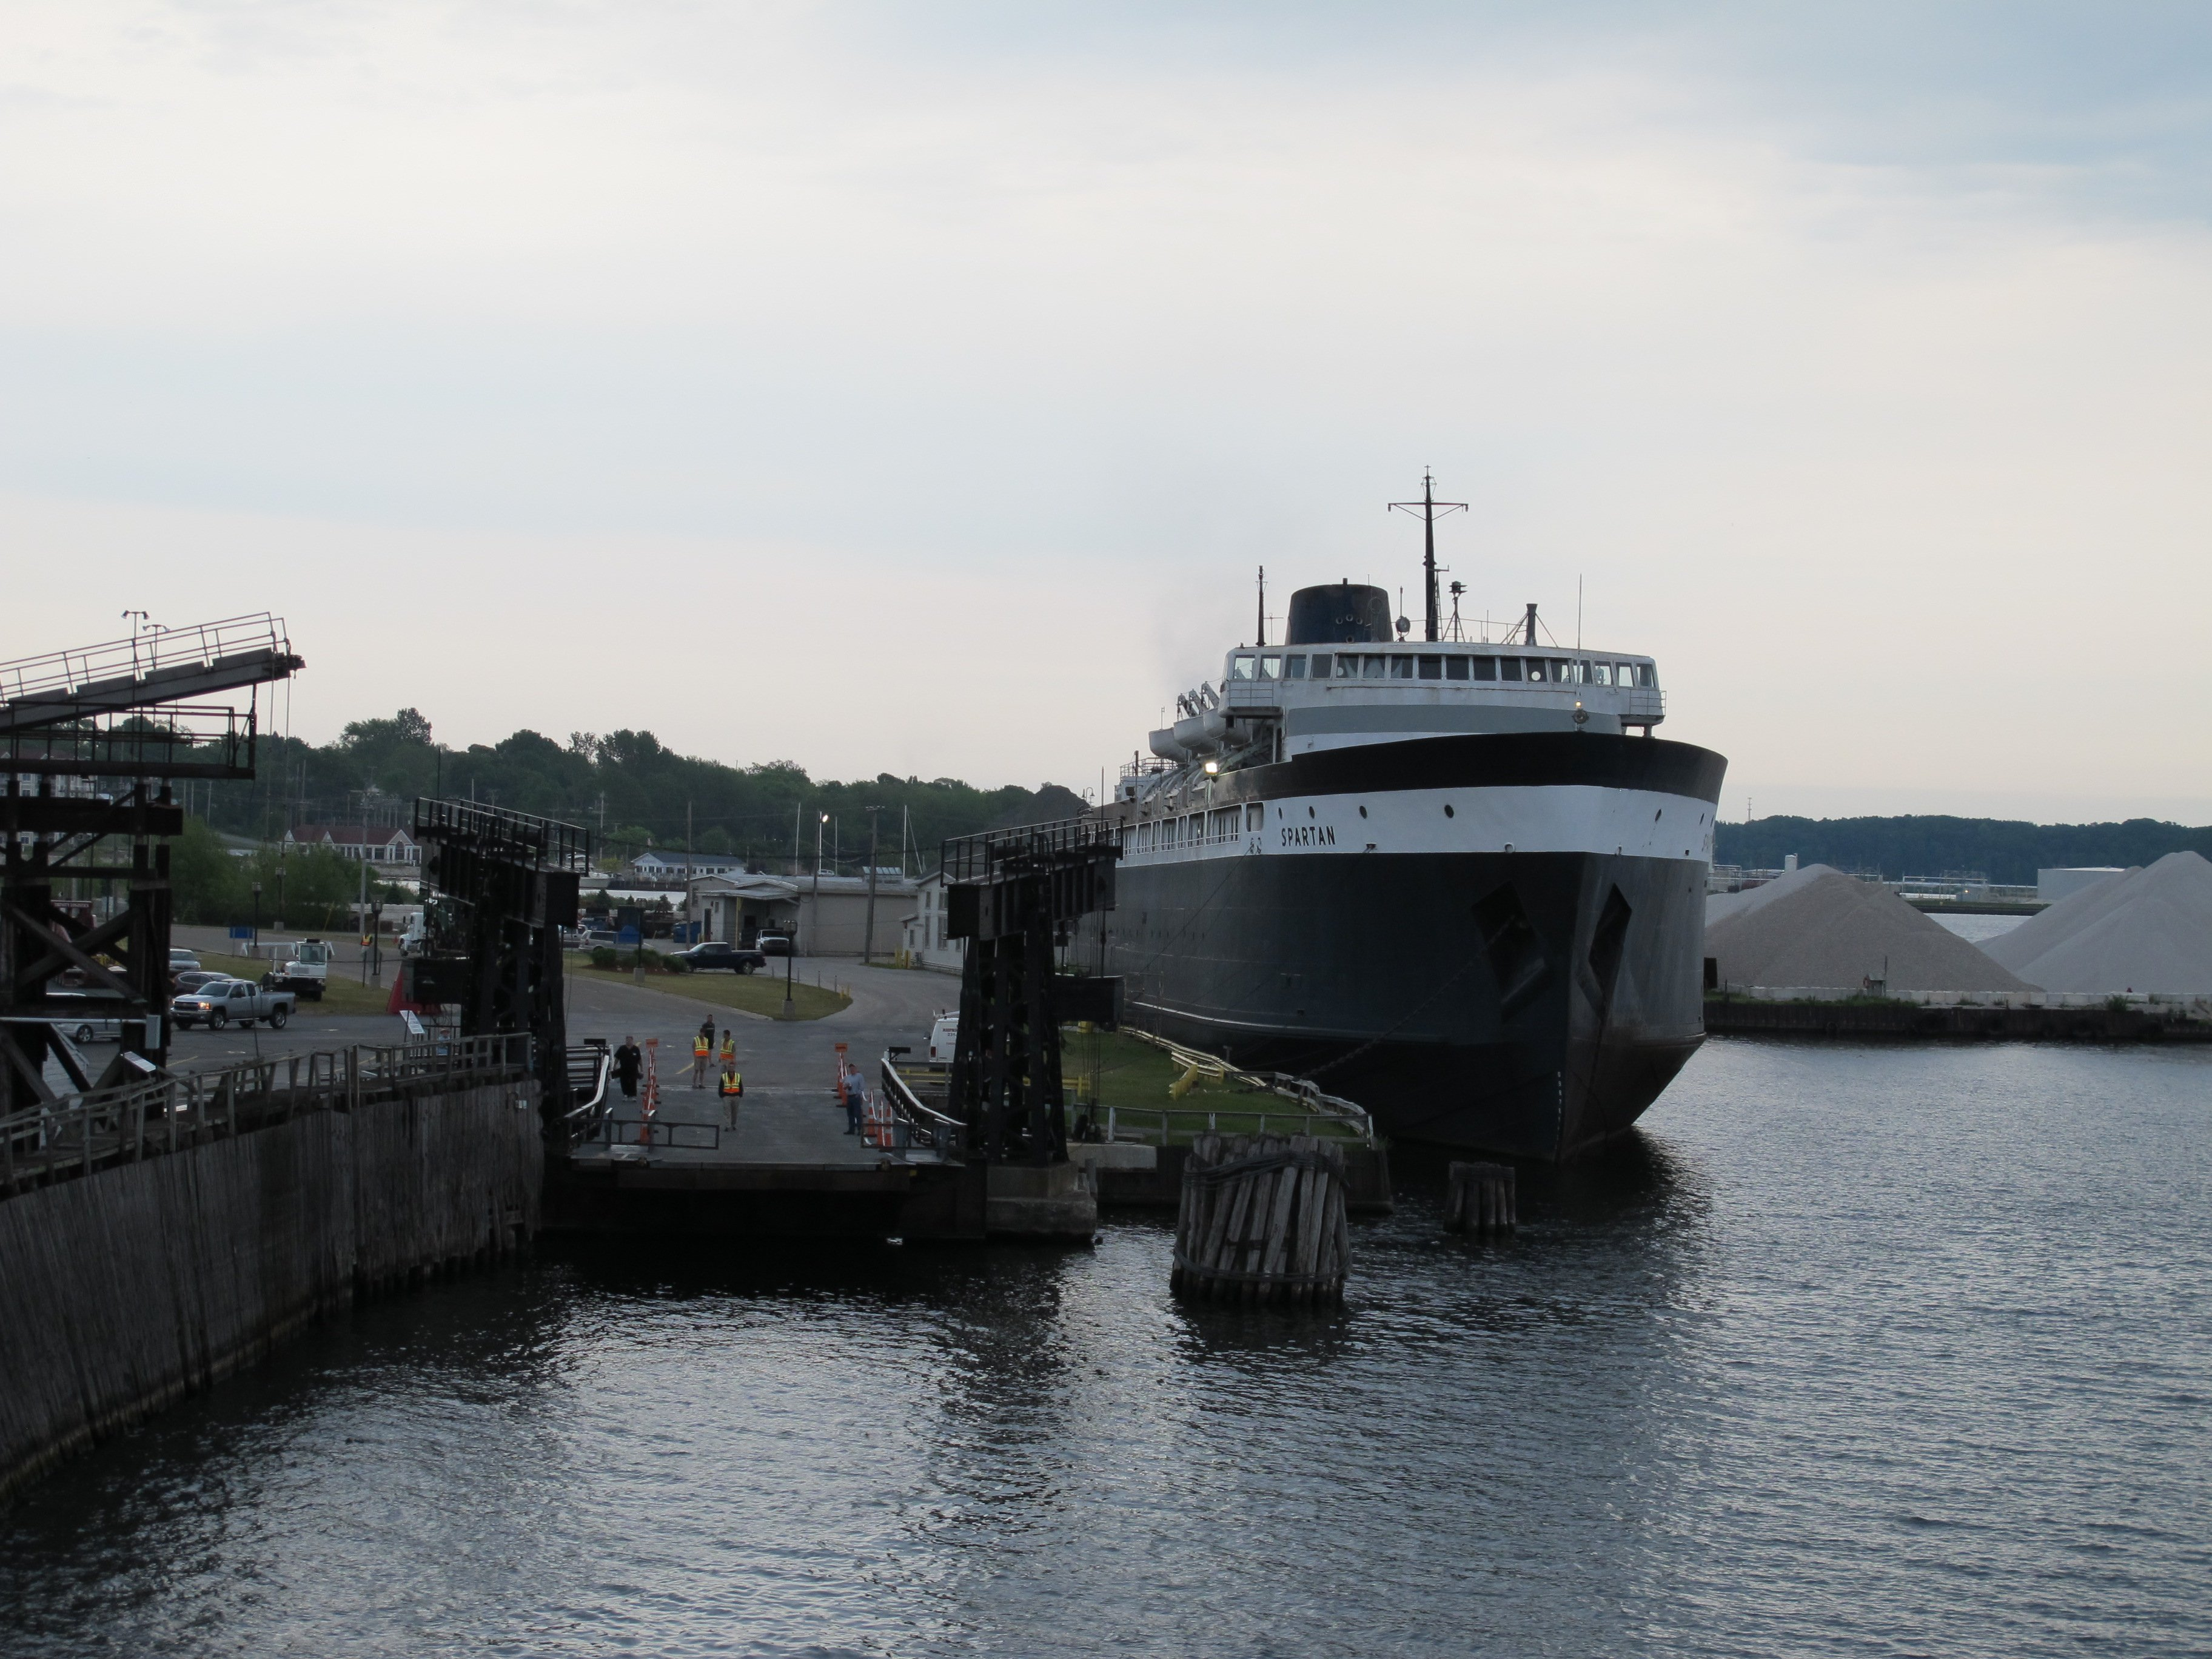 Ludington ferry dock; abandoned S.S. Spartan in background